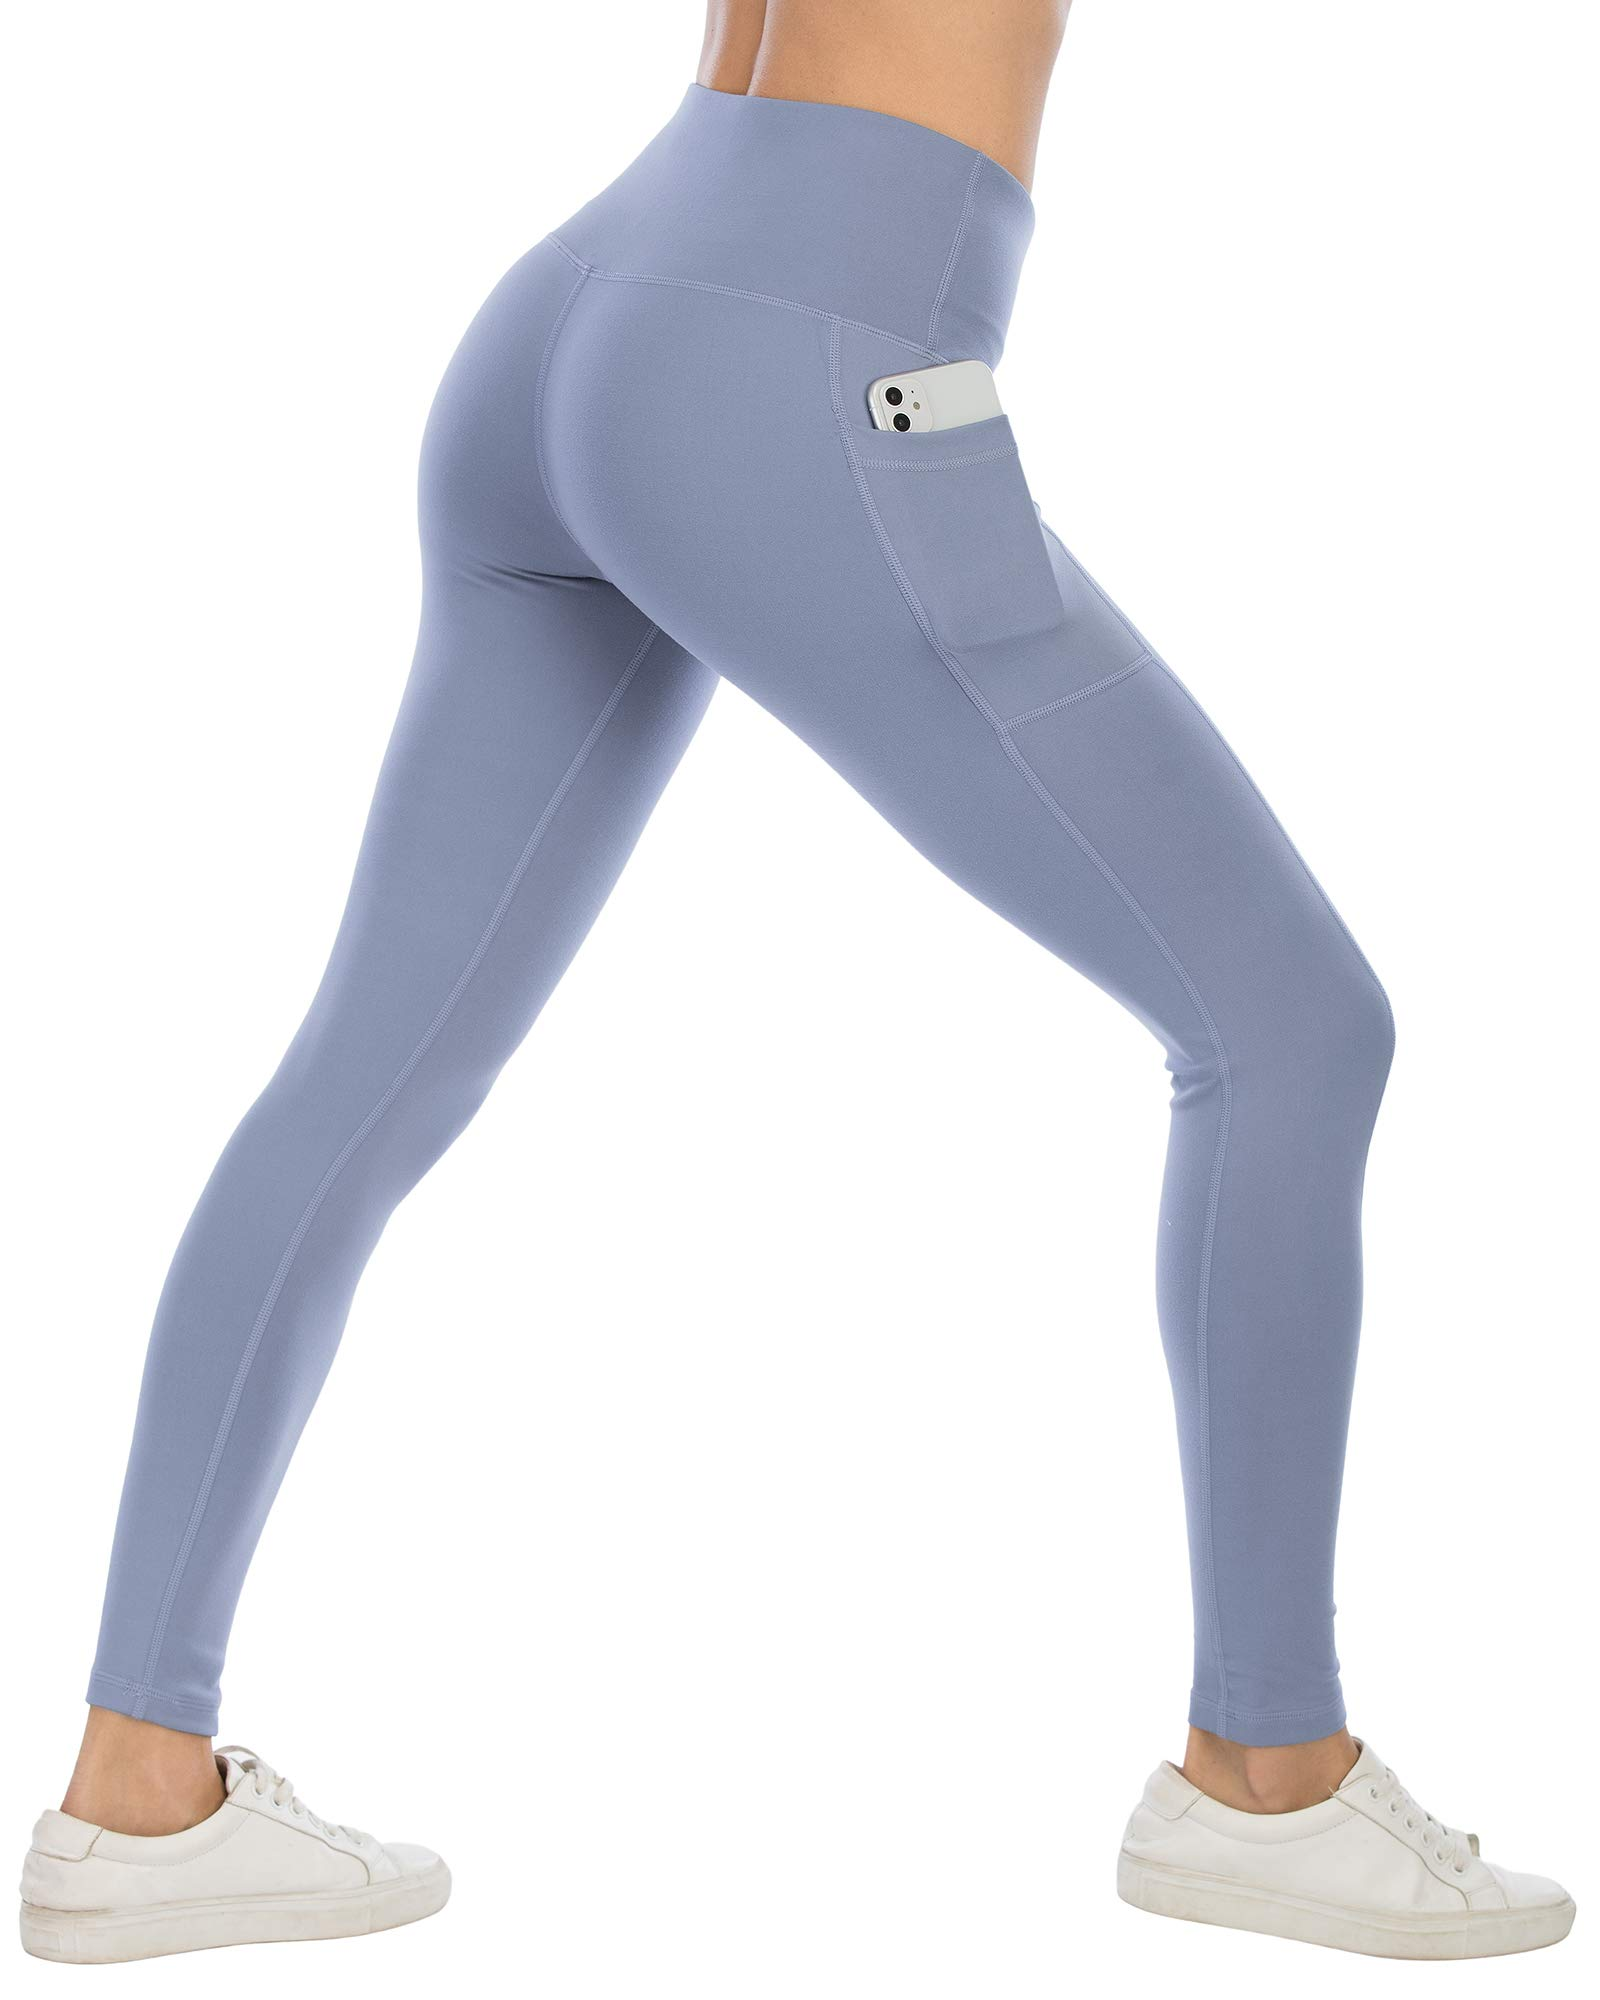 ATHVOTAR Yoga Pants with Pockets for Women, High Waisted Workout Leggings with Pockets